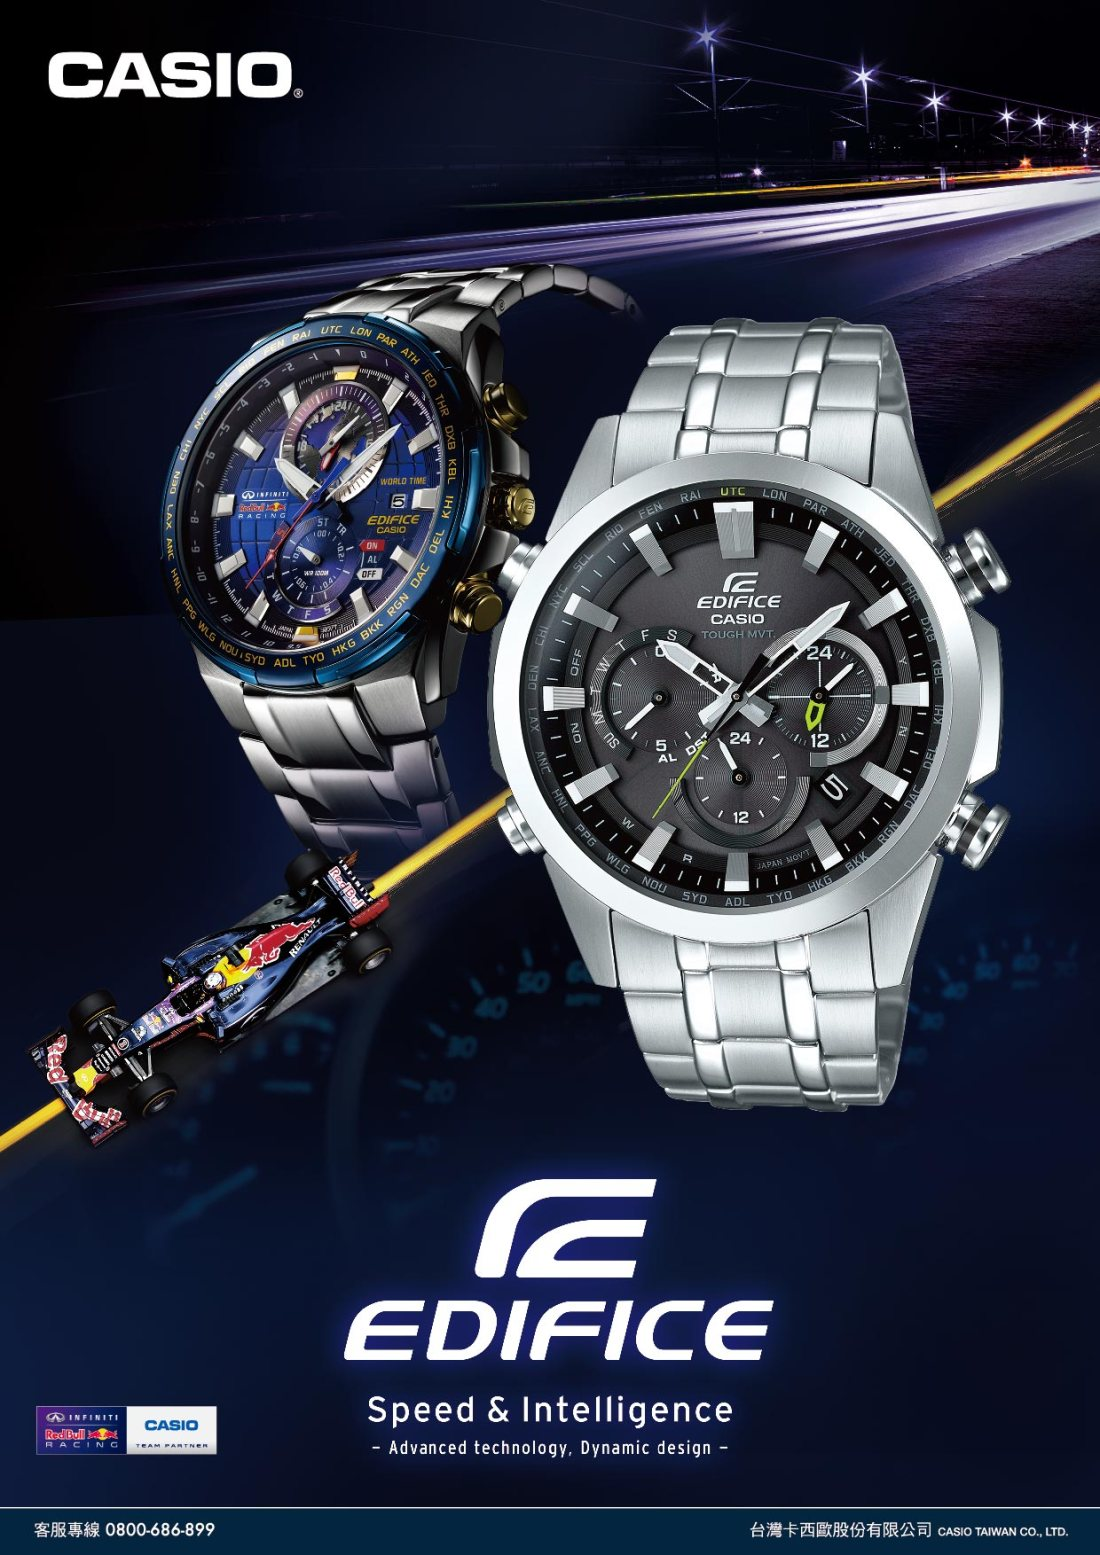 CASIO_Edifice-01.jpg